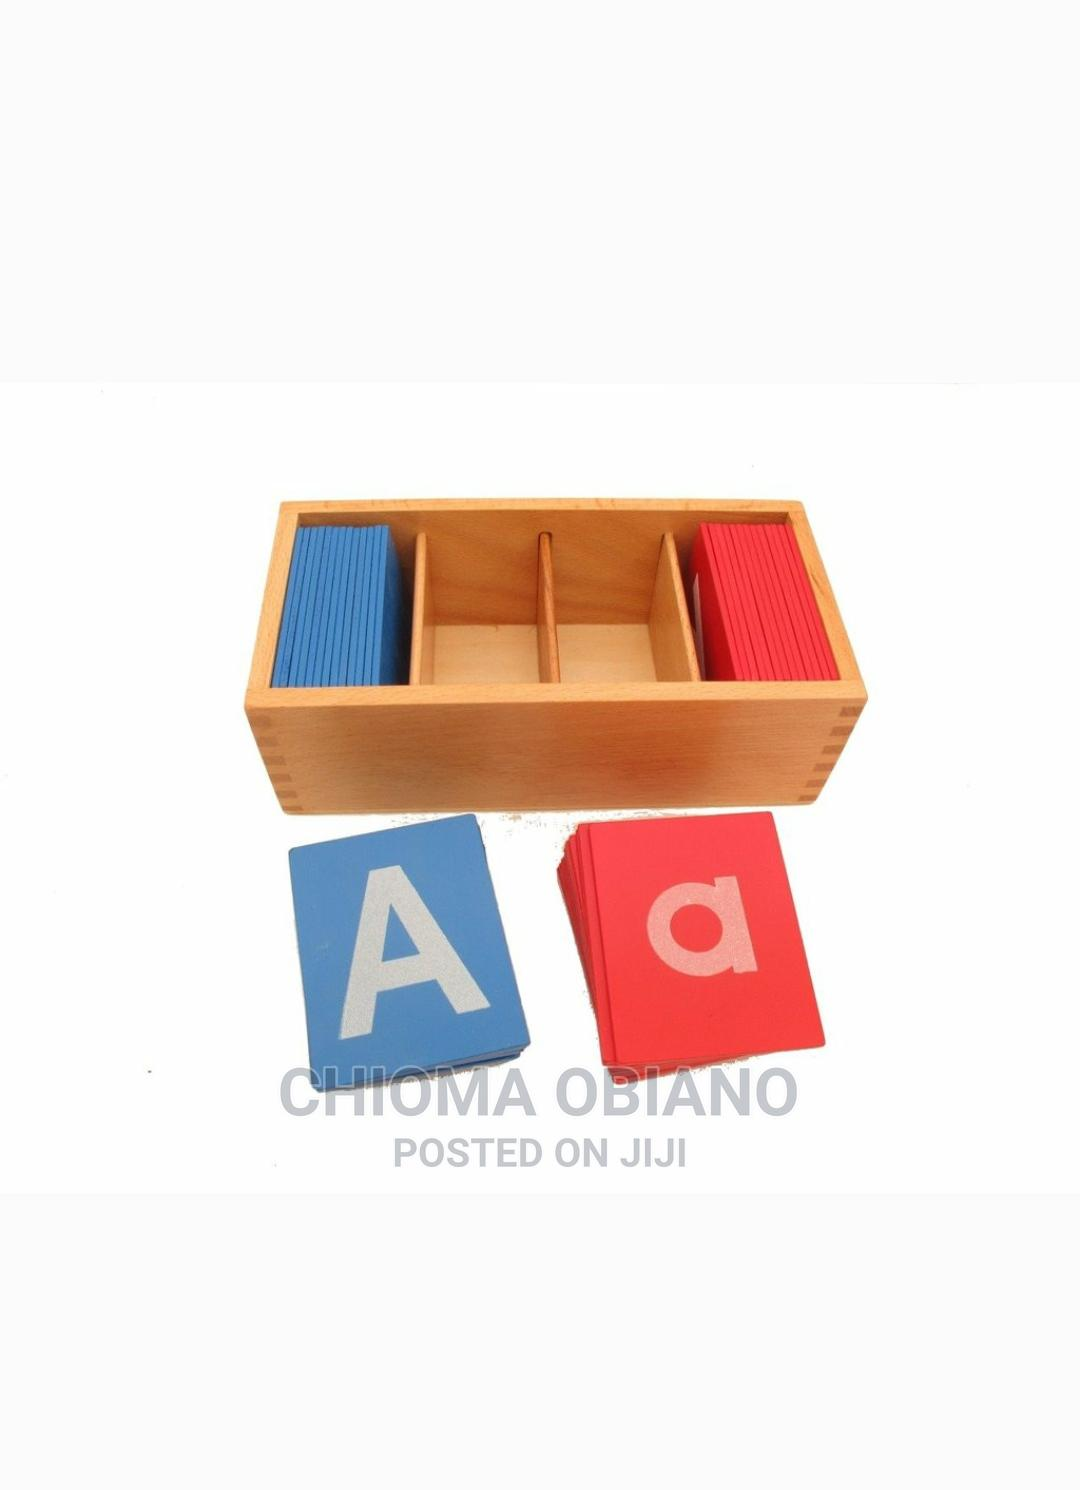 Archive Imported Montessori Materials in Alimosho   Toys, Jane ...